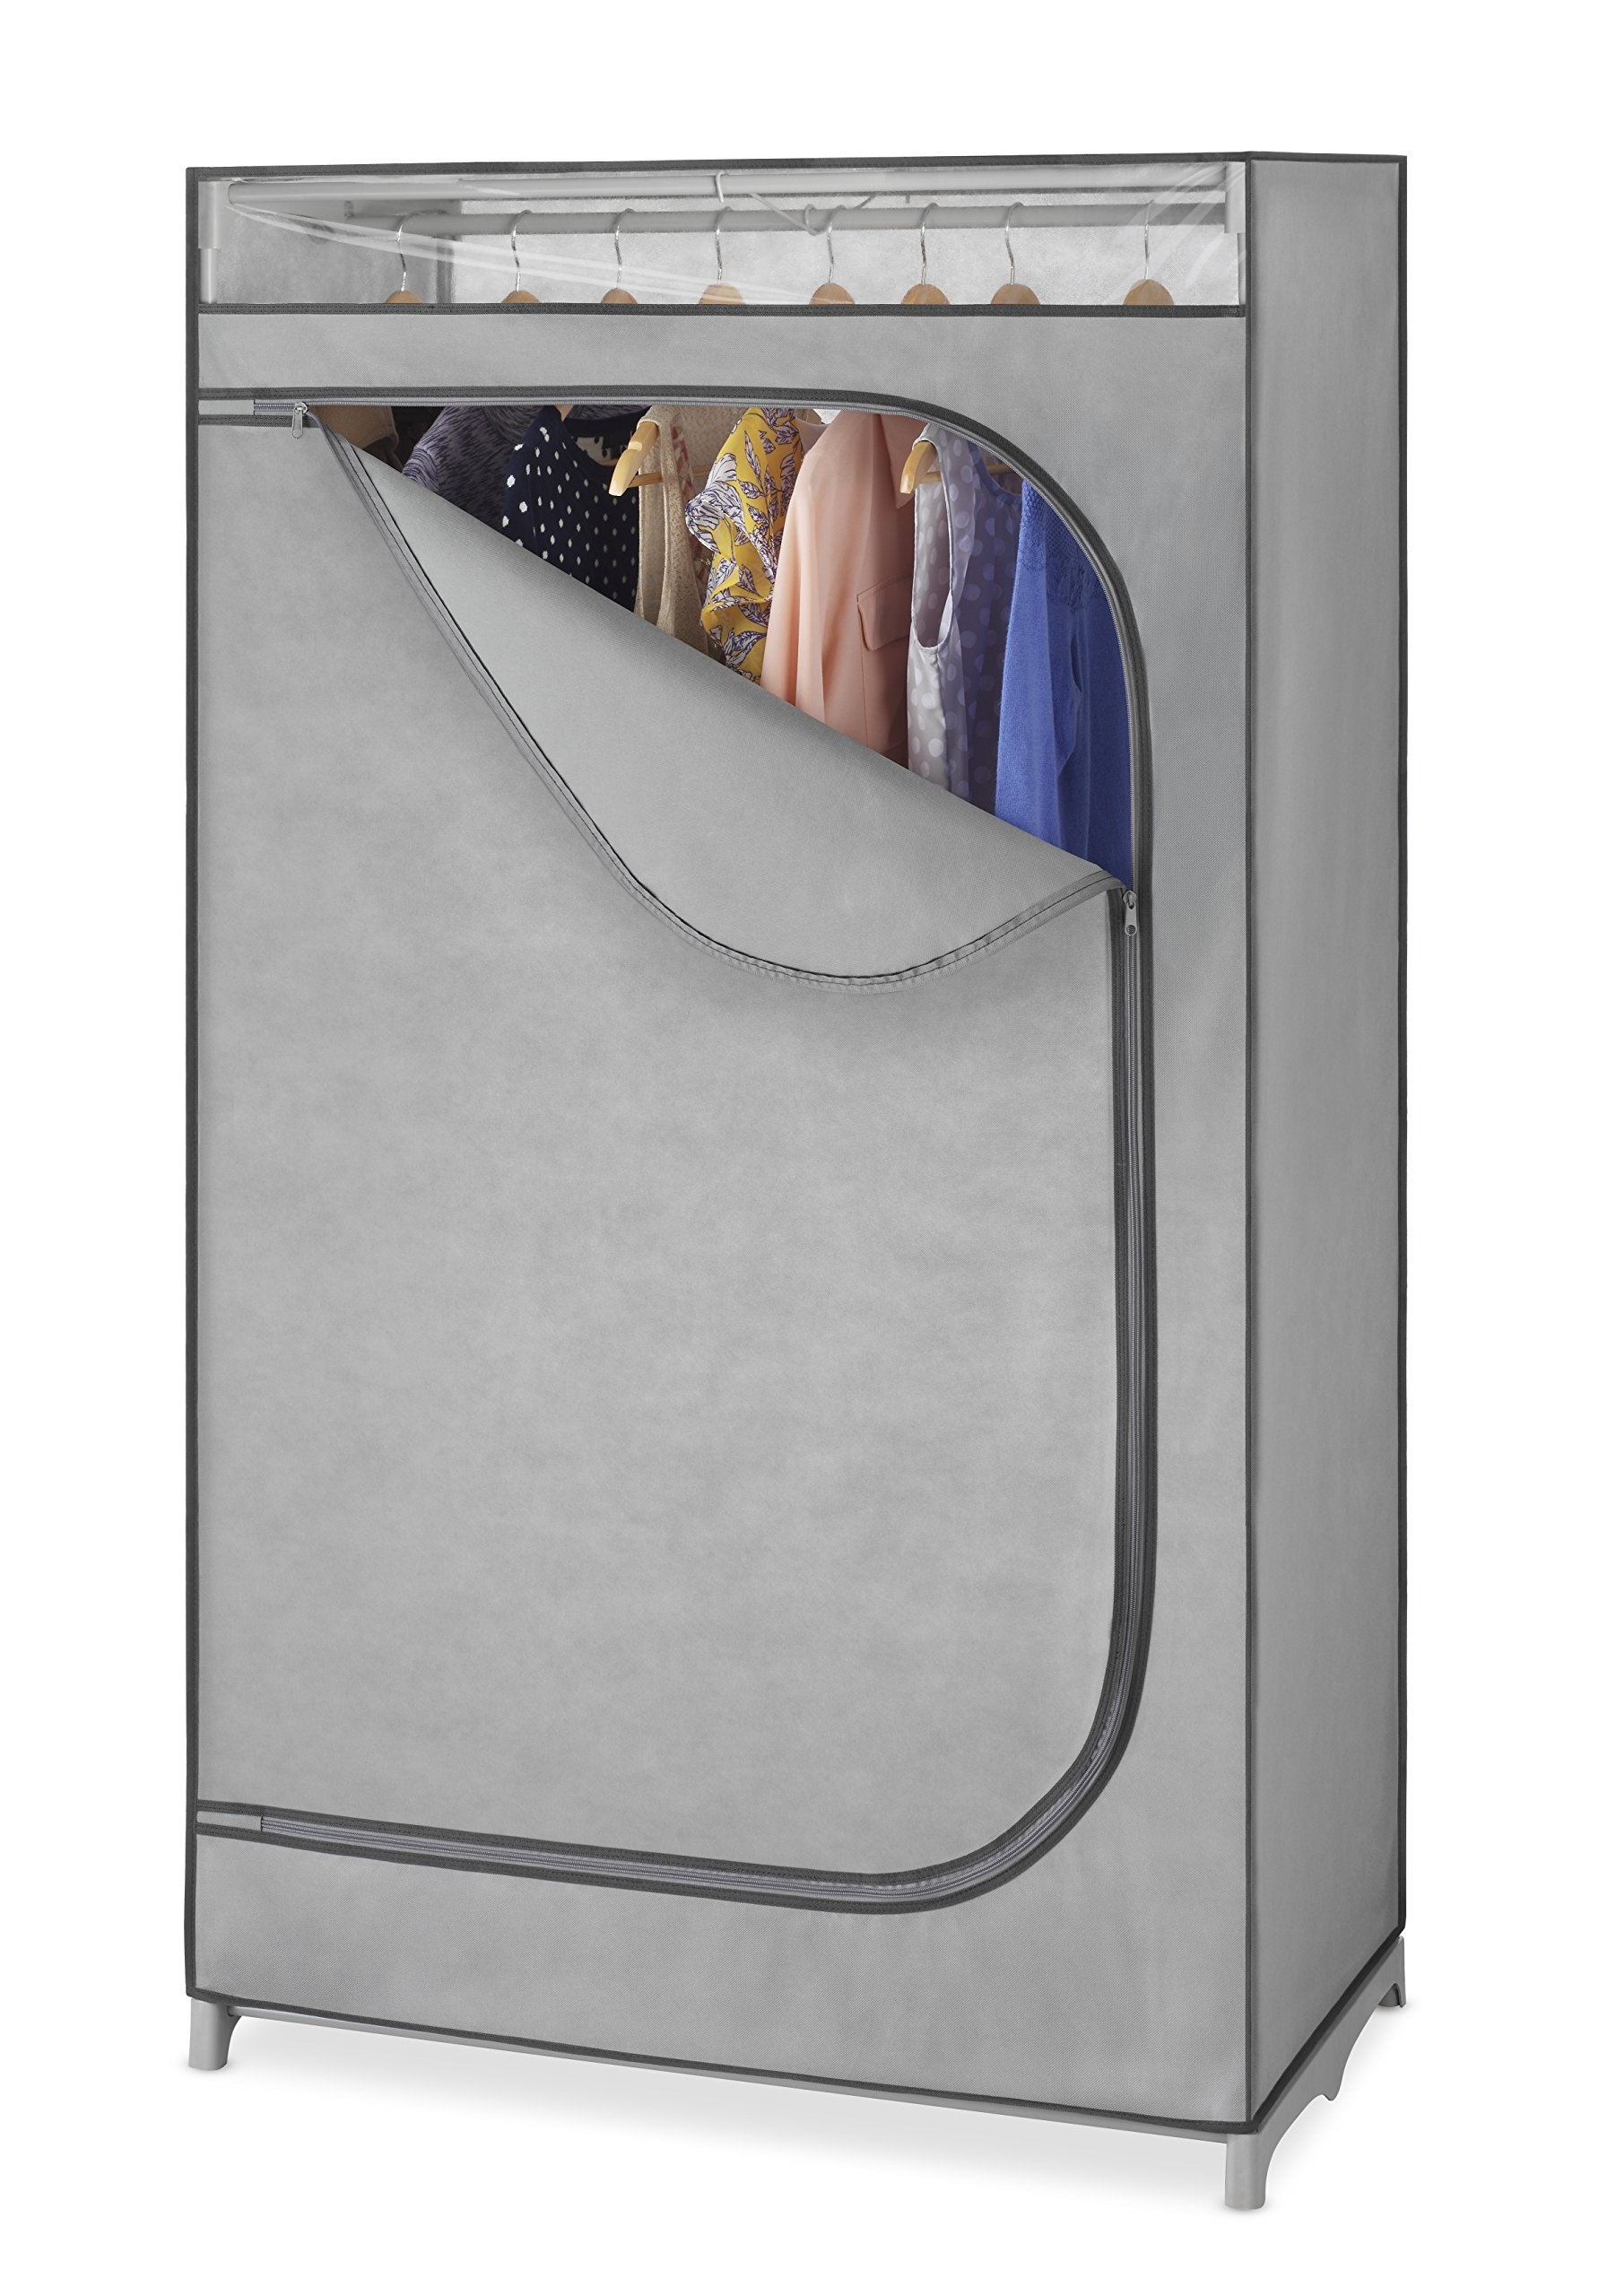 Whitmor Portable Wardrobe Clothes Closet Storage Organizer with Hanging Rack - Grey Color - No-tool Assembly - See Through Window - Washable Fabric Cover - Extra Strong & Durable - 19.75 x 36 x 64'' by Whitmor